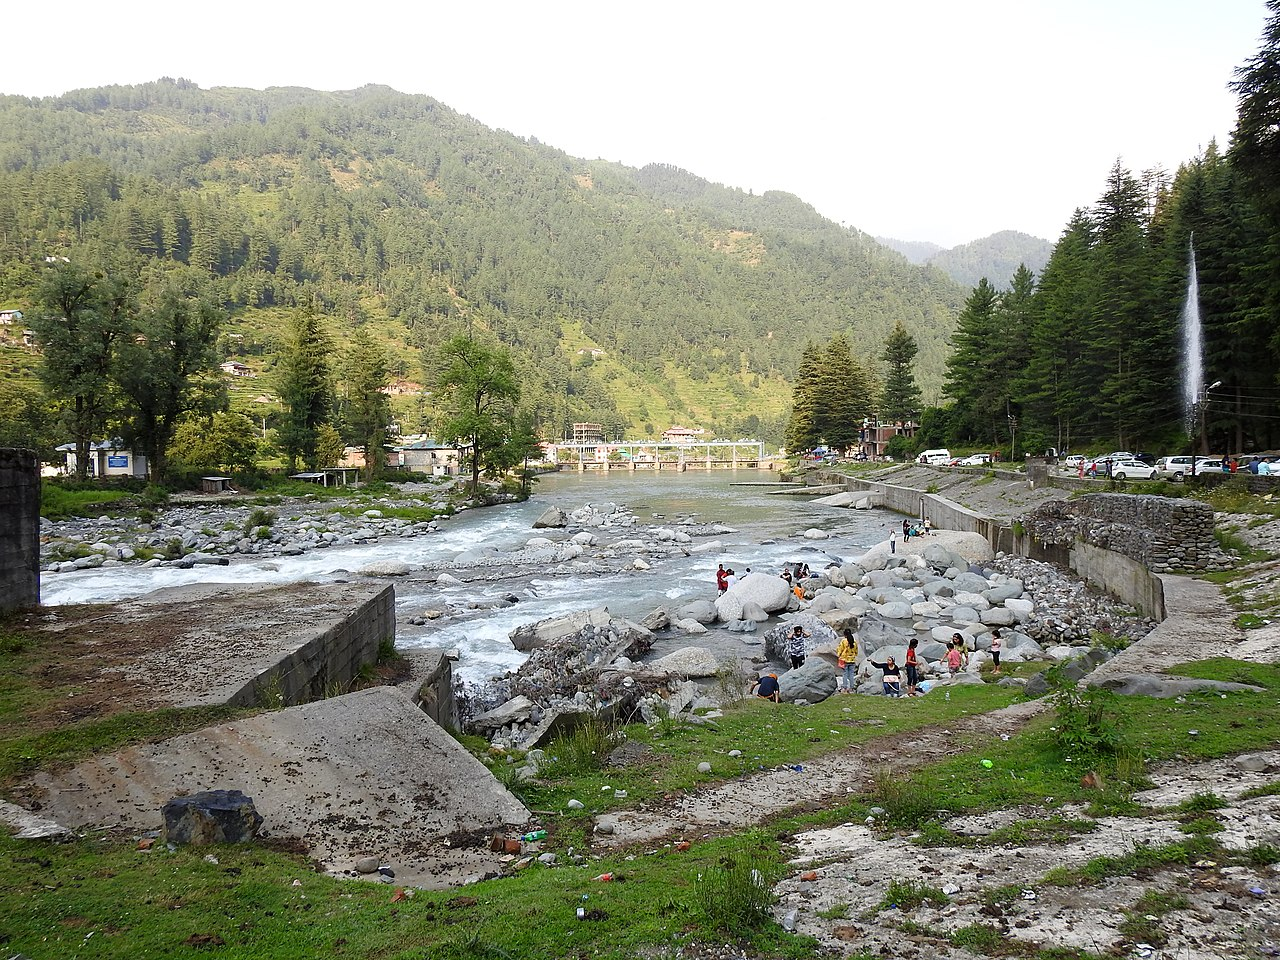 View of the riverside, Barot